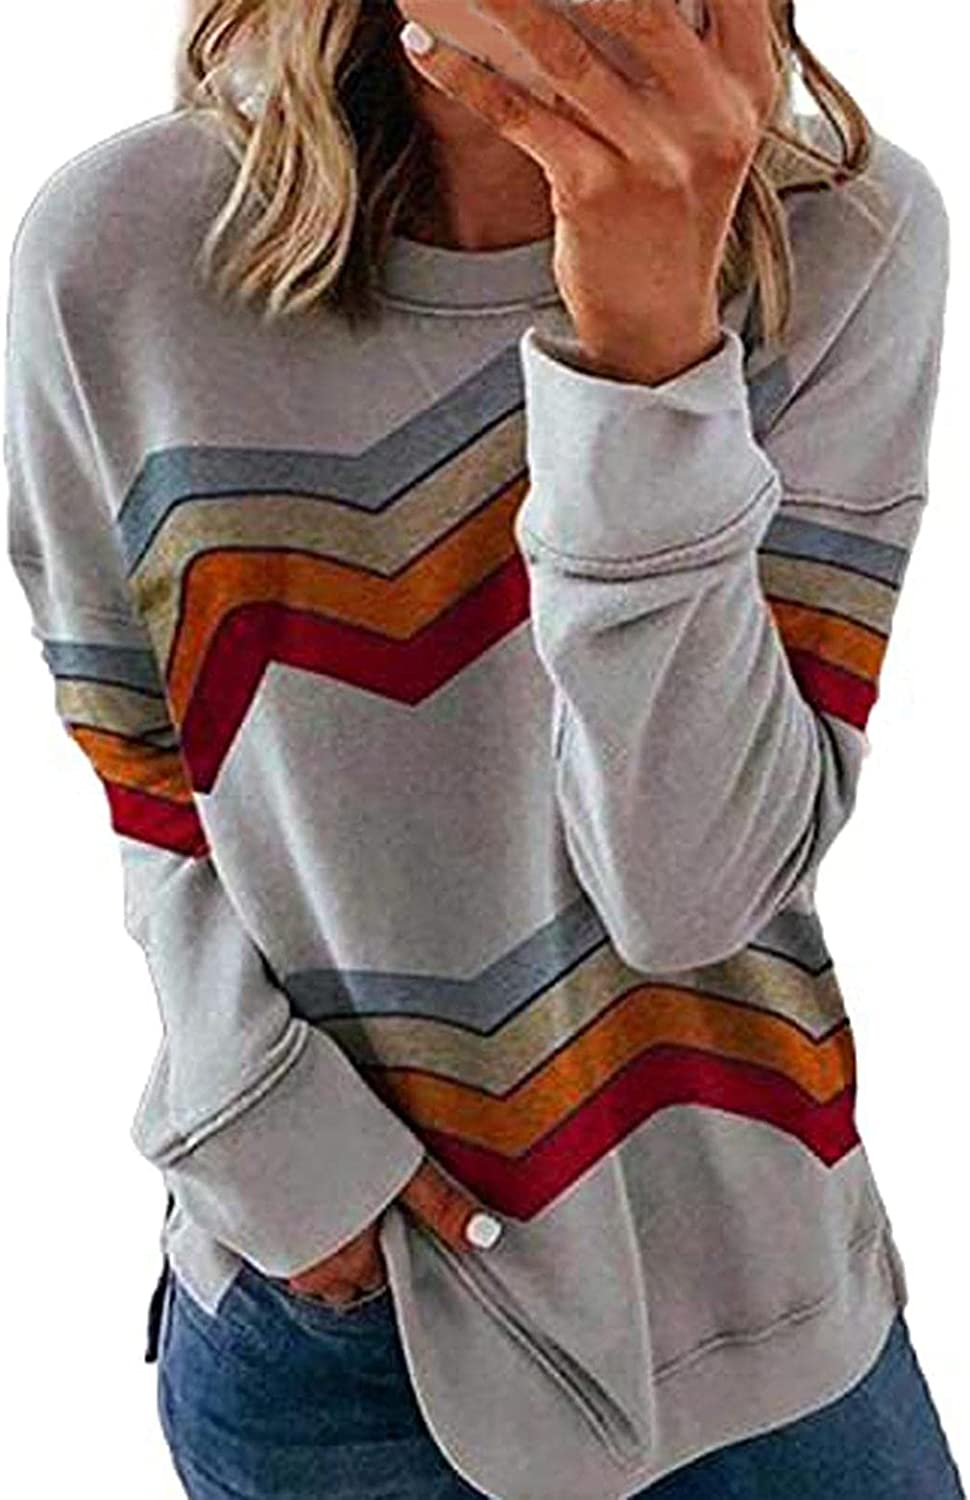 AODONG Women Sweatshirt Pullover, Womens Striped Printed Long Sleeve Crewneck Comfy Loose Soft Casual T Shirts Pullover